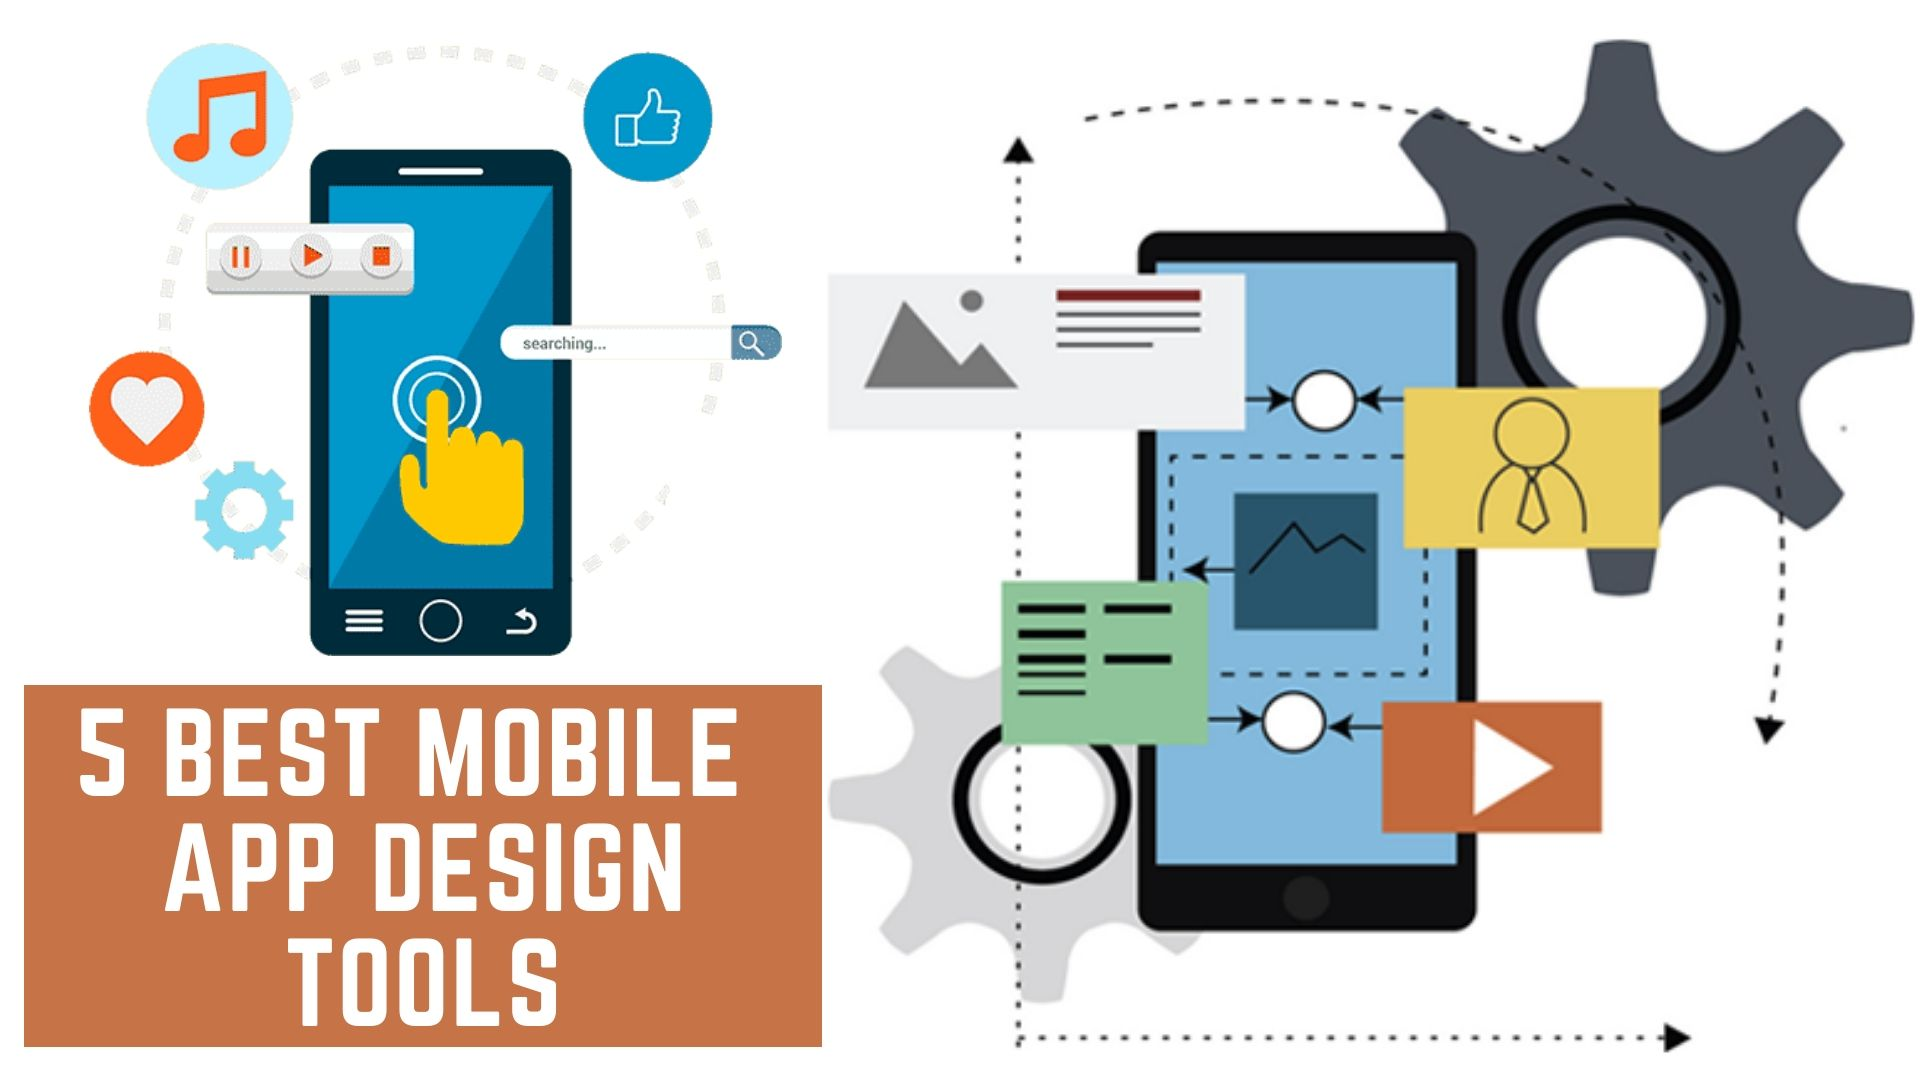 5 Best Mobile App Design Tools